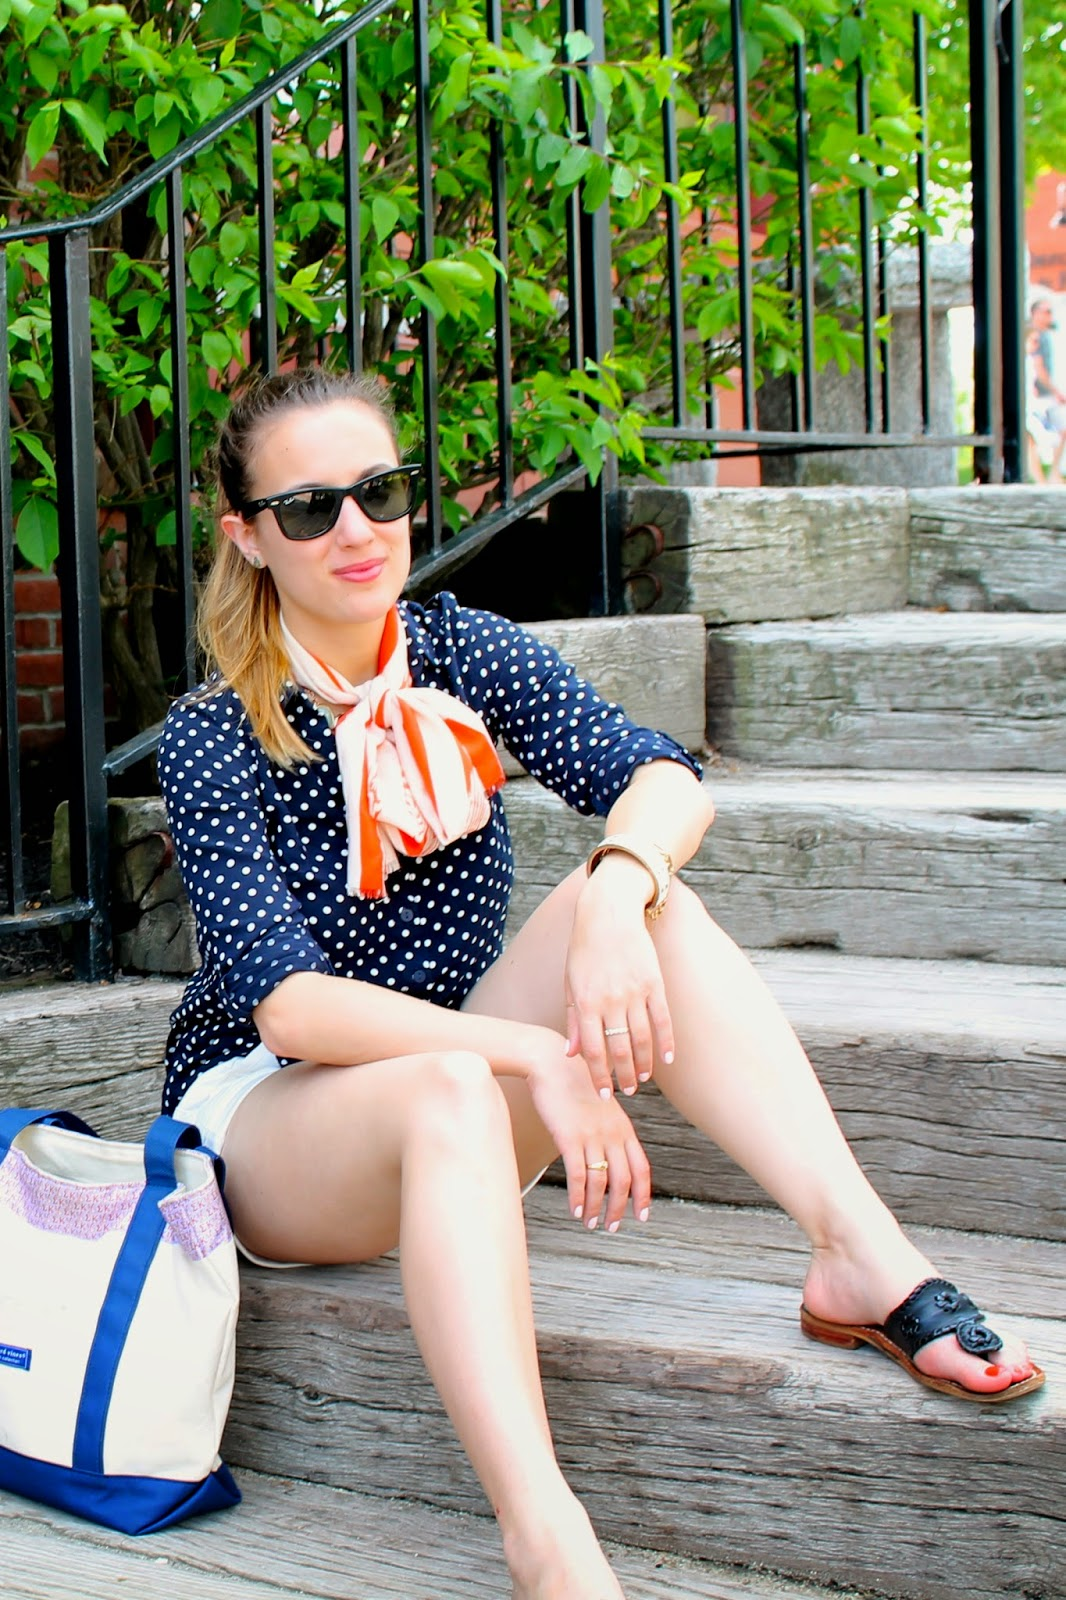 H&M, American Eagle Outfitters, prep, travel, outfit ideas, preppy, classic, polka dots, Ray-Ban, Vineyard Vines, Forever 21, vintage, Jack Rogers, street style, fashion blog